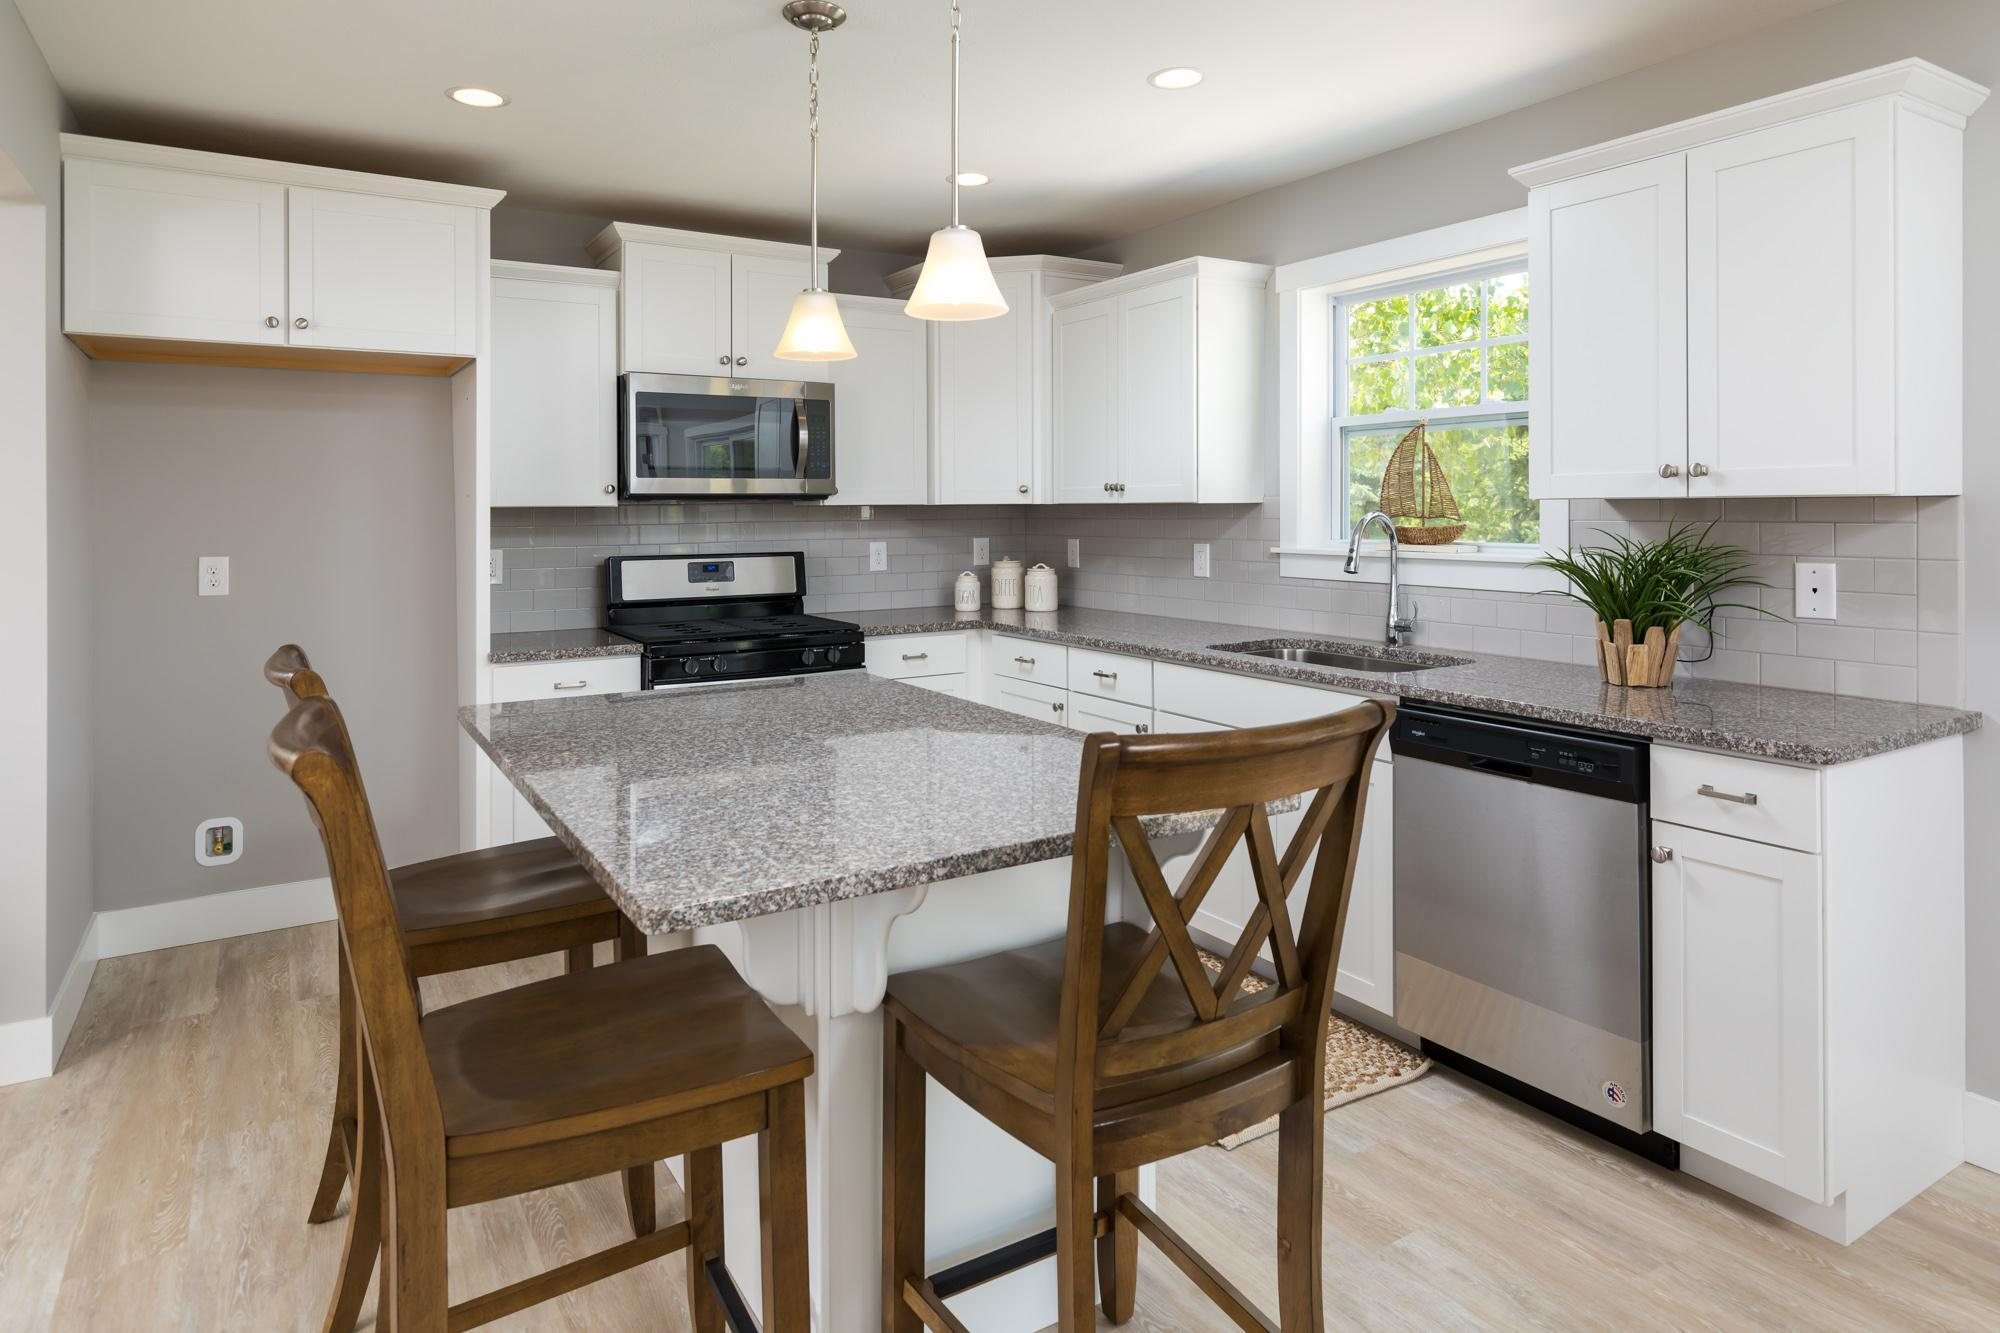 Kitchen featured in the Elements 1680 By Allen Edwin Homes in Grand Rapids, MI